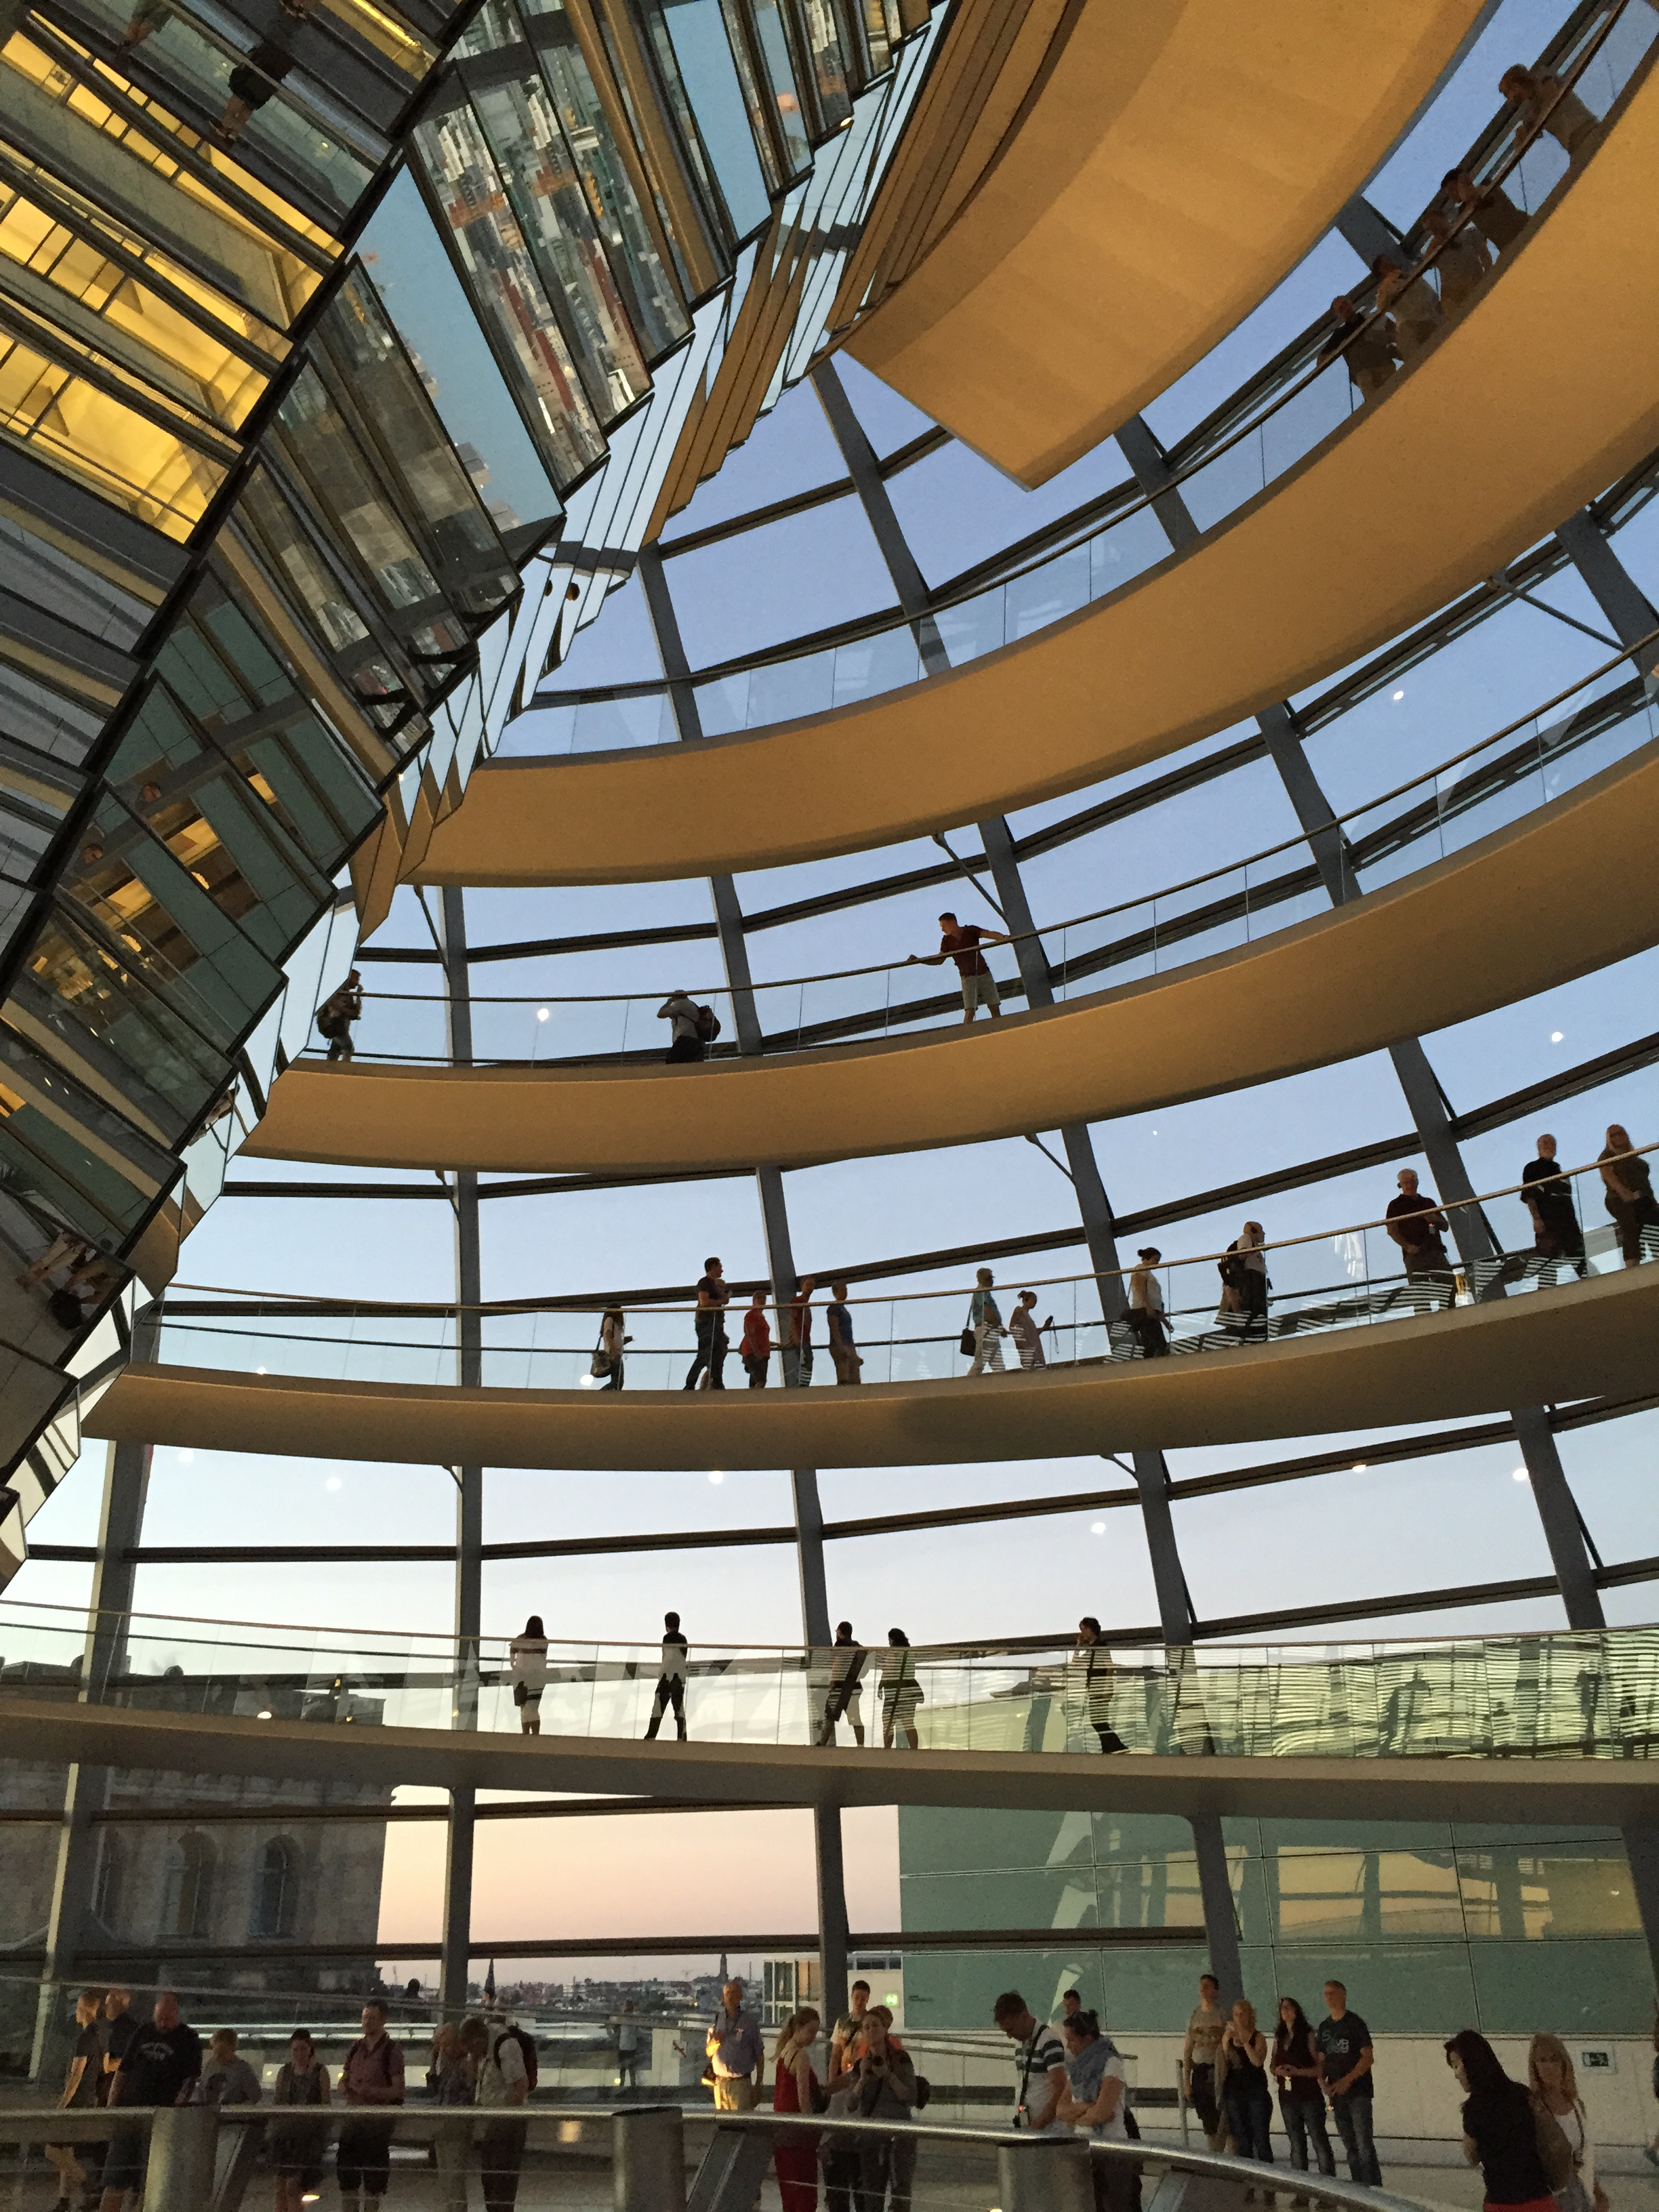 The much-lauded Reichstag Dome more than lived-up to expectations. A breath-taking exercise in architectural story-telling. I visited late in the evening and was surprised by the relaxed atmosphere and the fact we were able to wander freely well after 11pm.